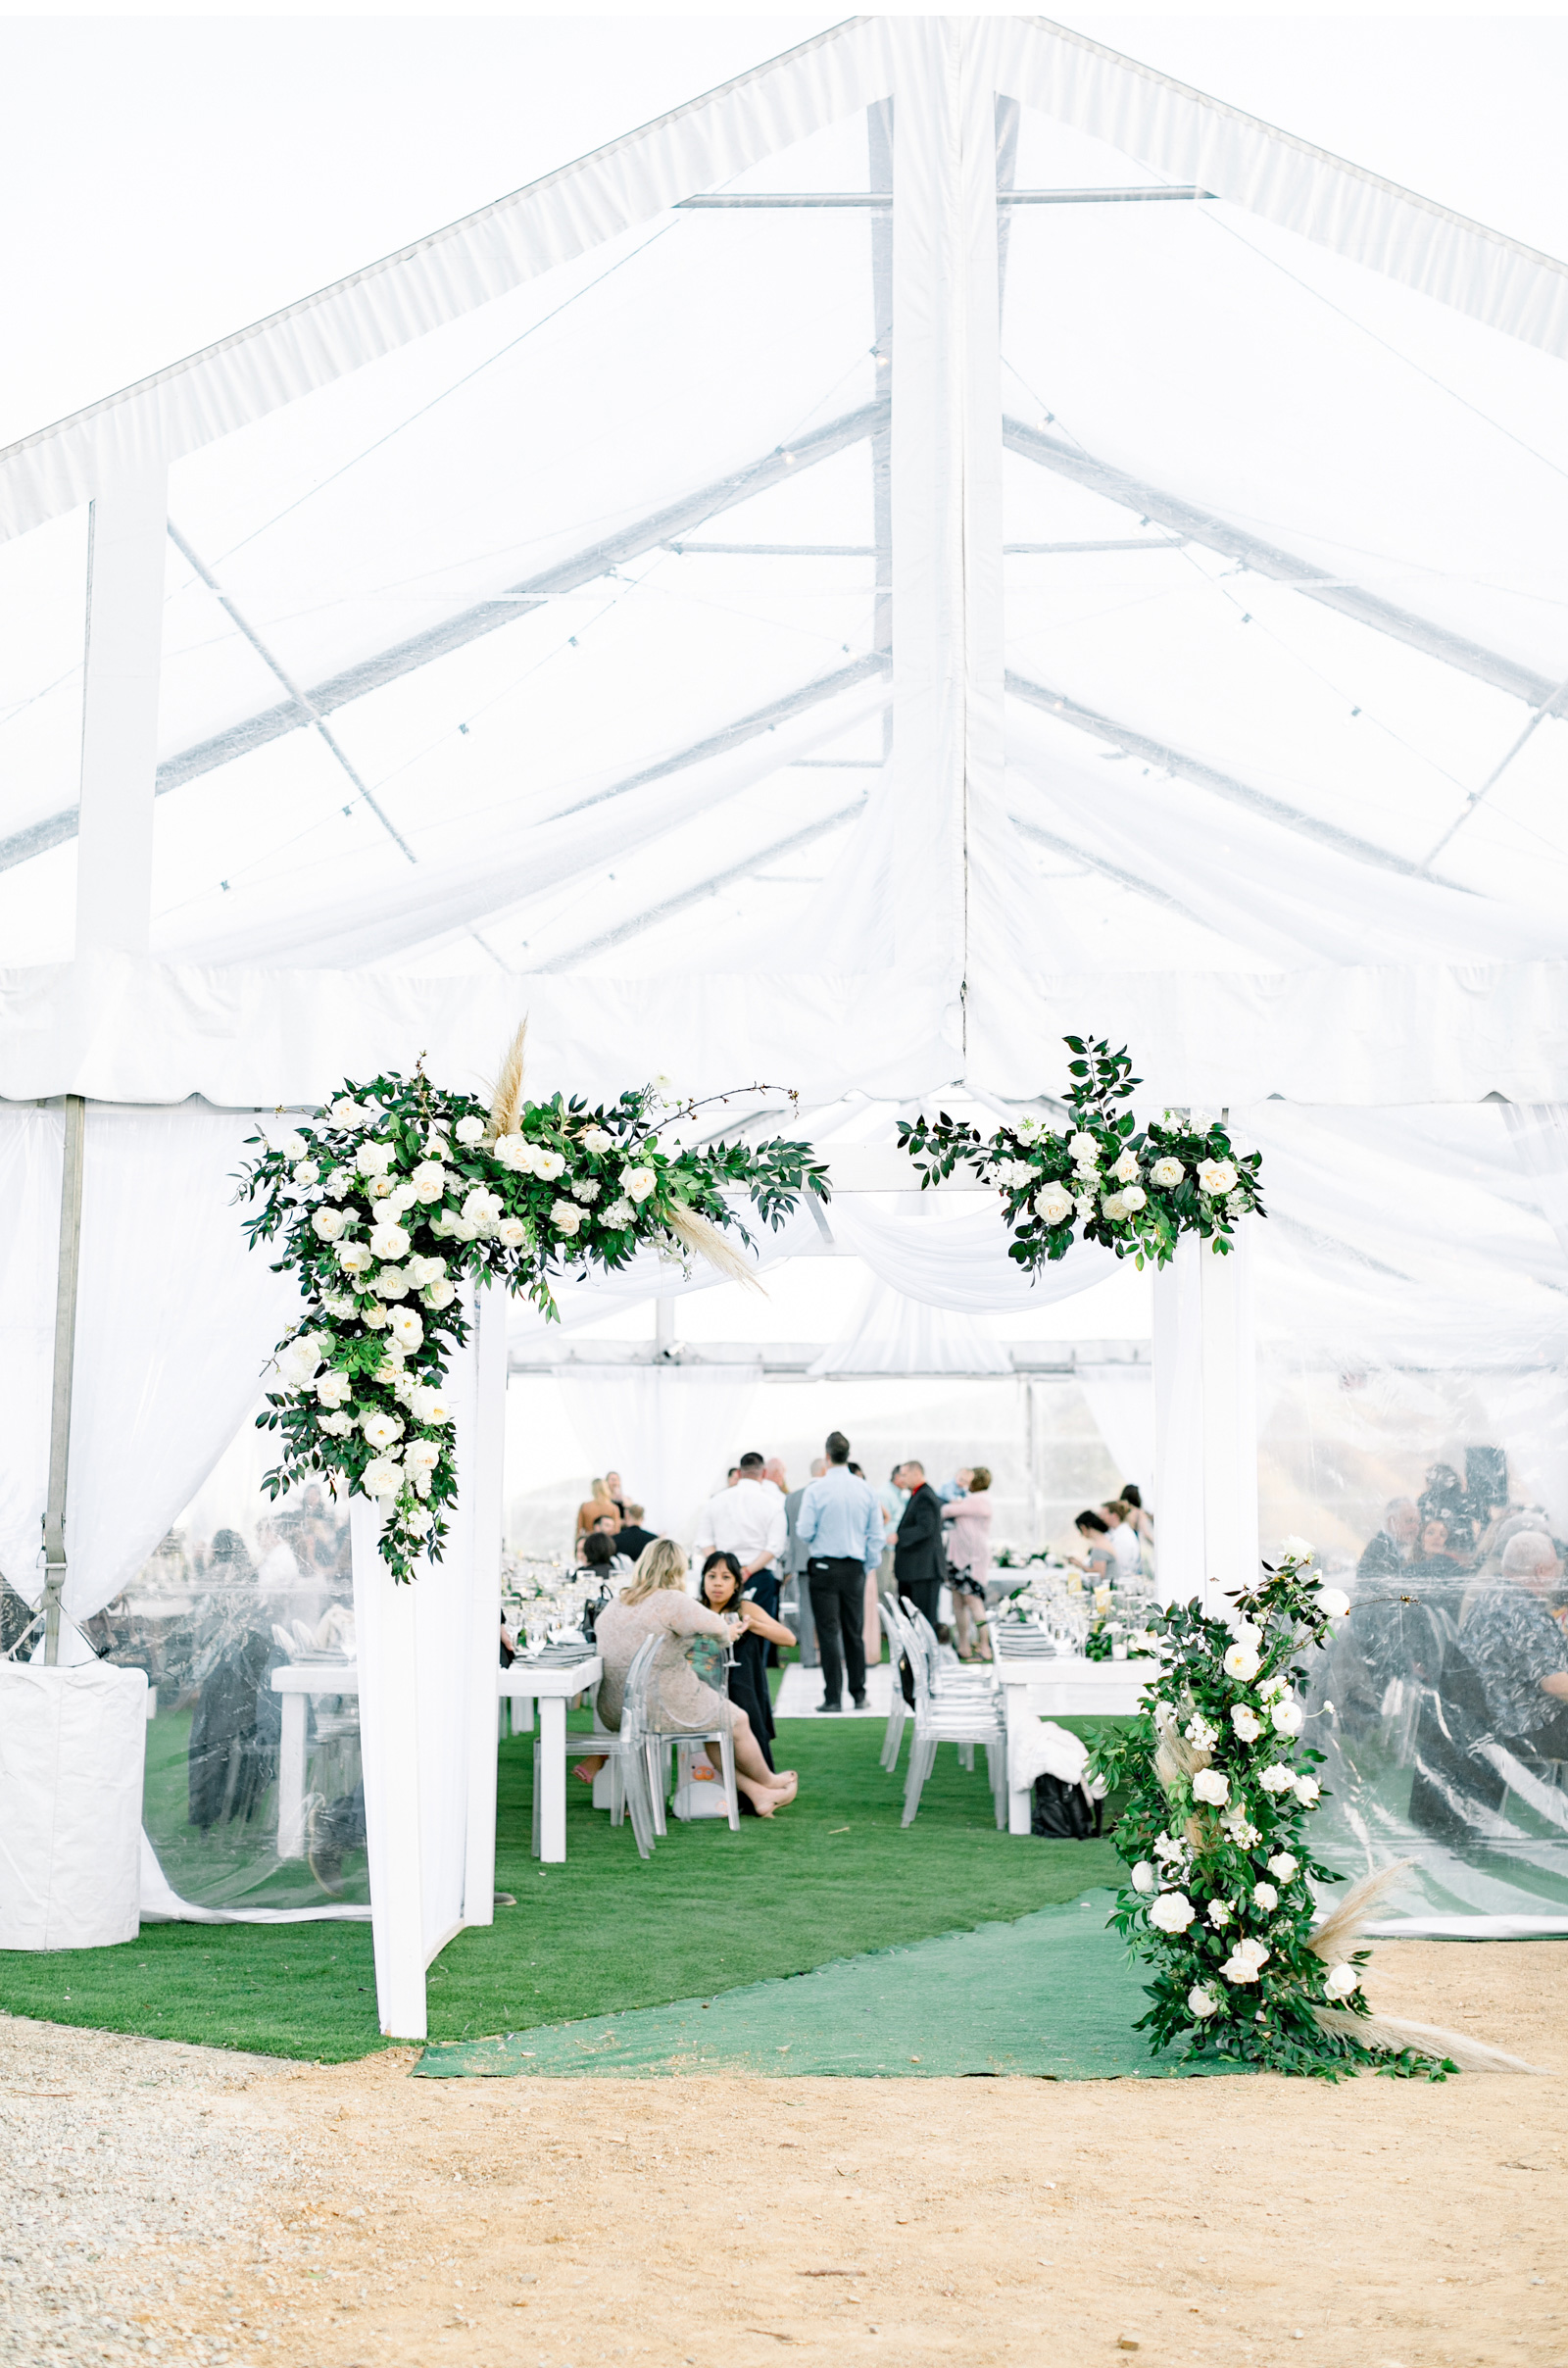 Style-Me-Pretty-2019-Romantic-Minimalist-Malibu-Wedding-Natalie-Schutt-Photography-Saddlerock-Ranch_04.jpg